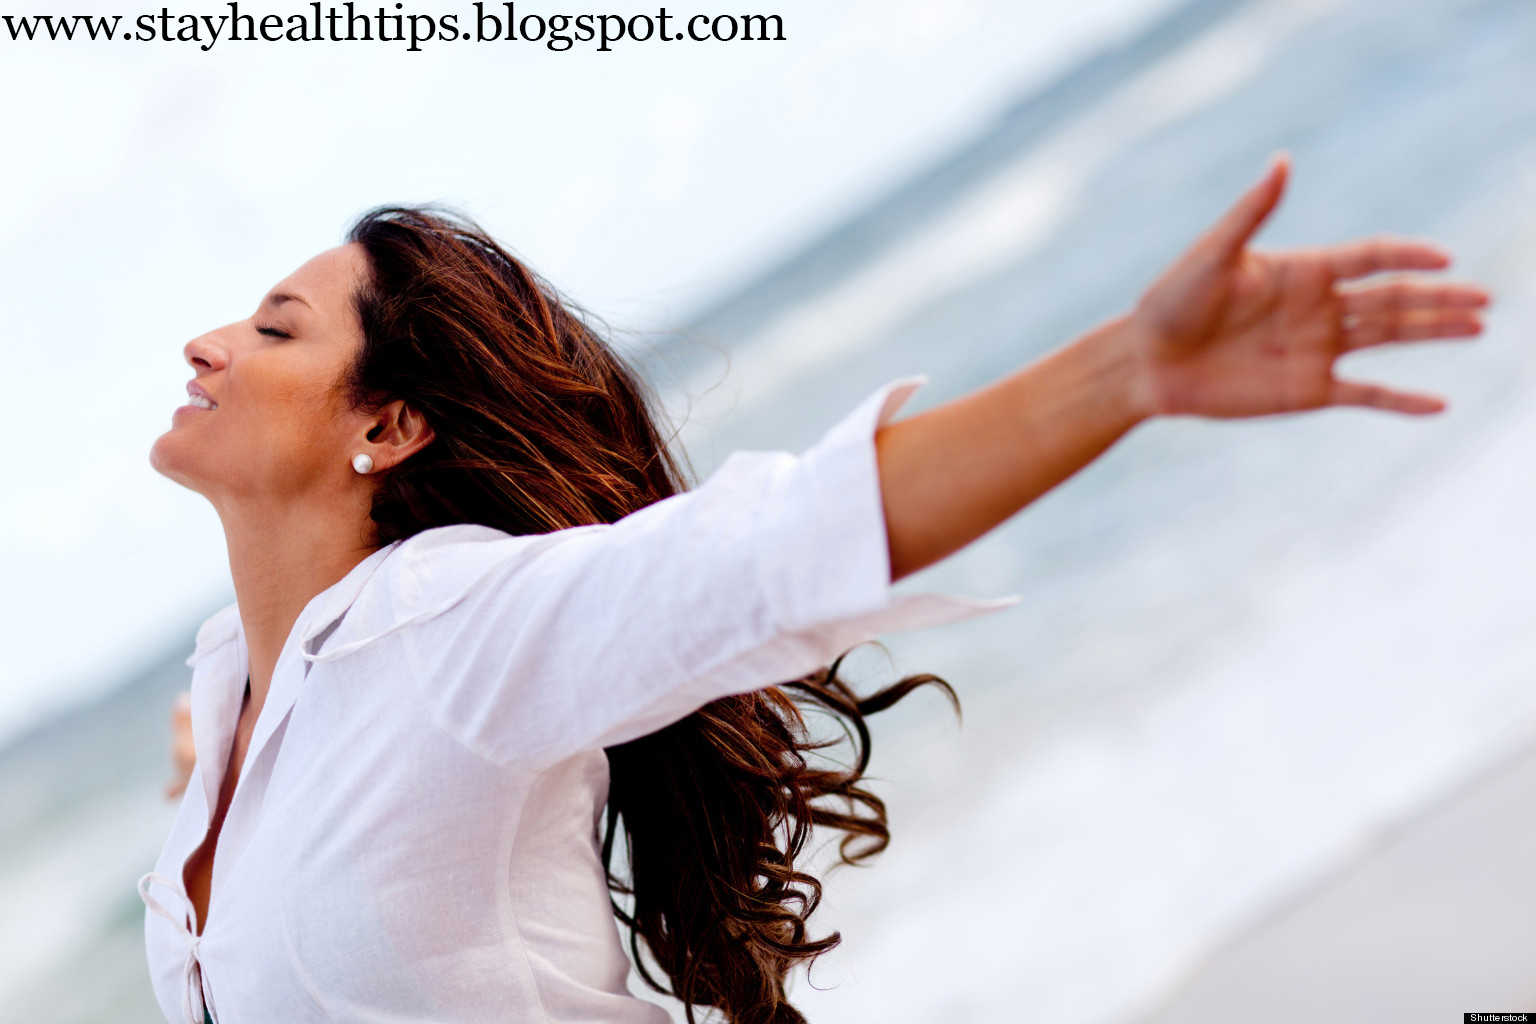 5 Daily Tips to Help You Thrive ~ Stay Healthy